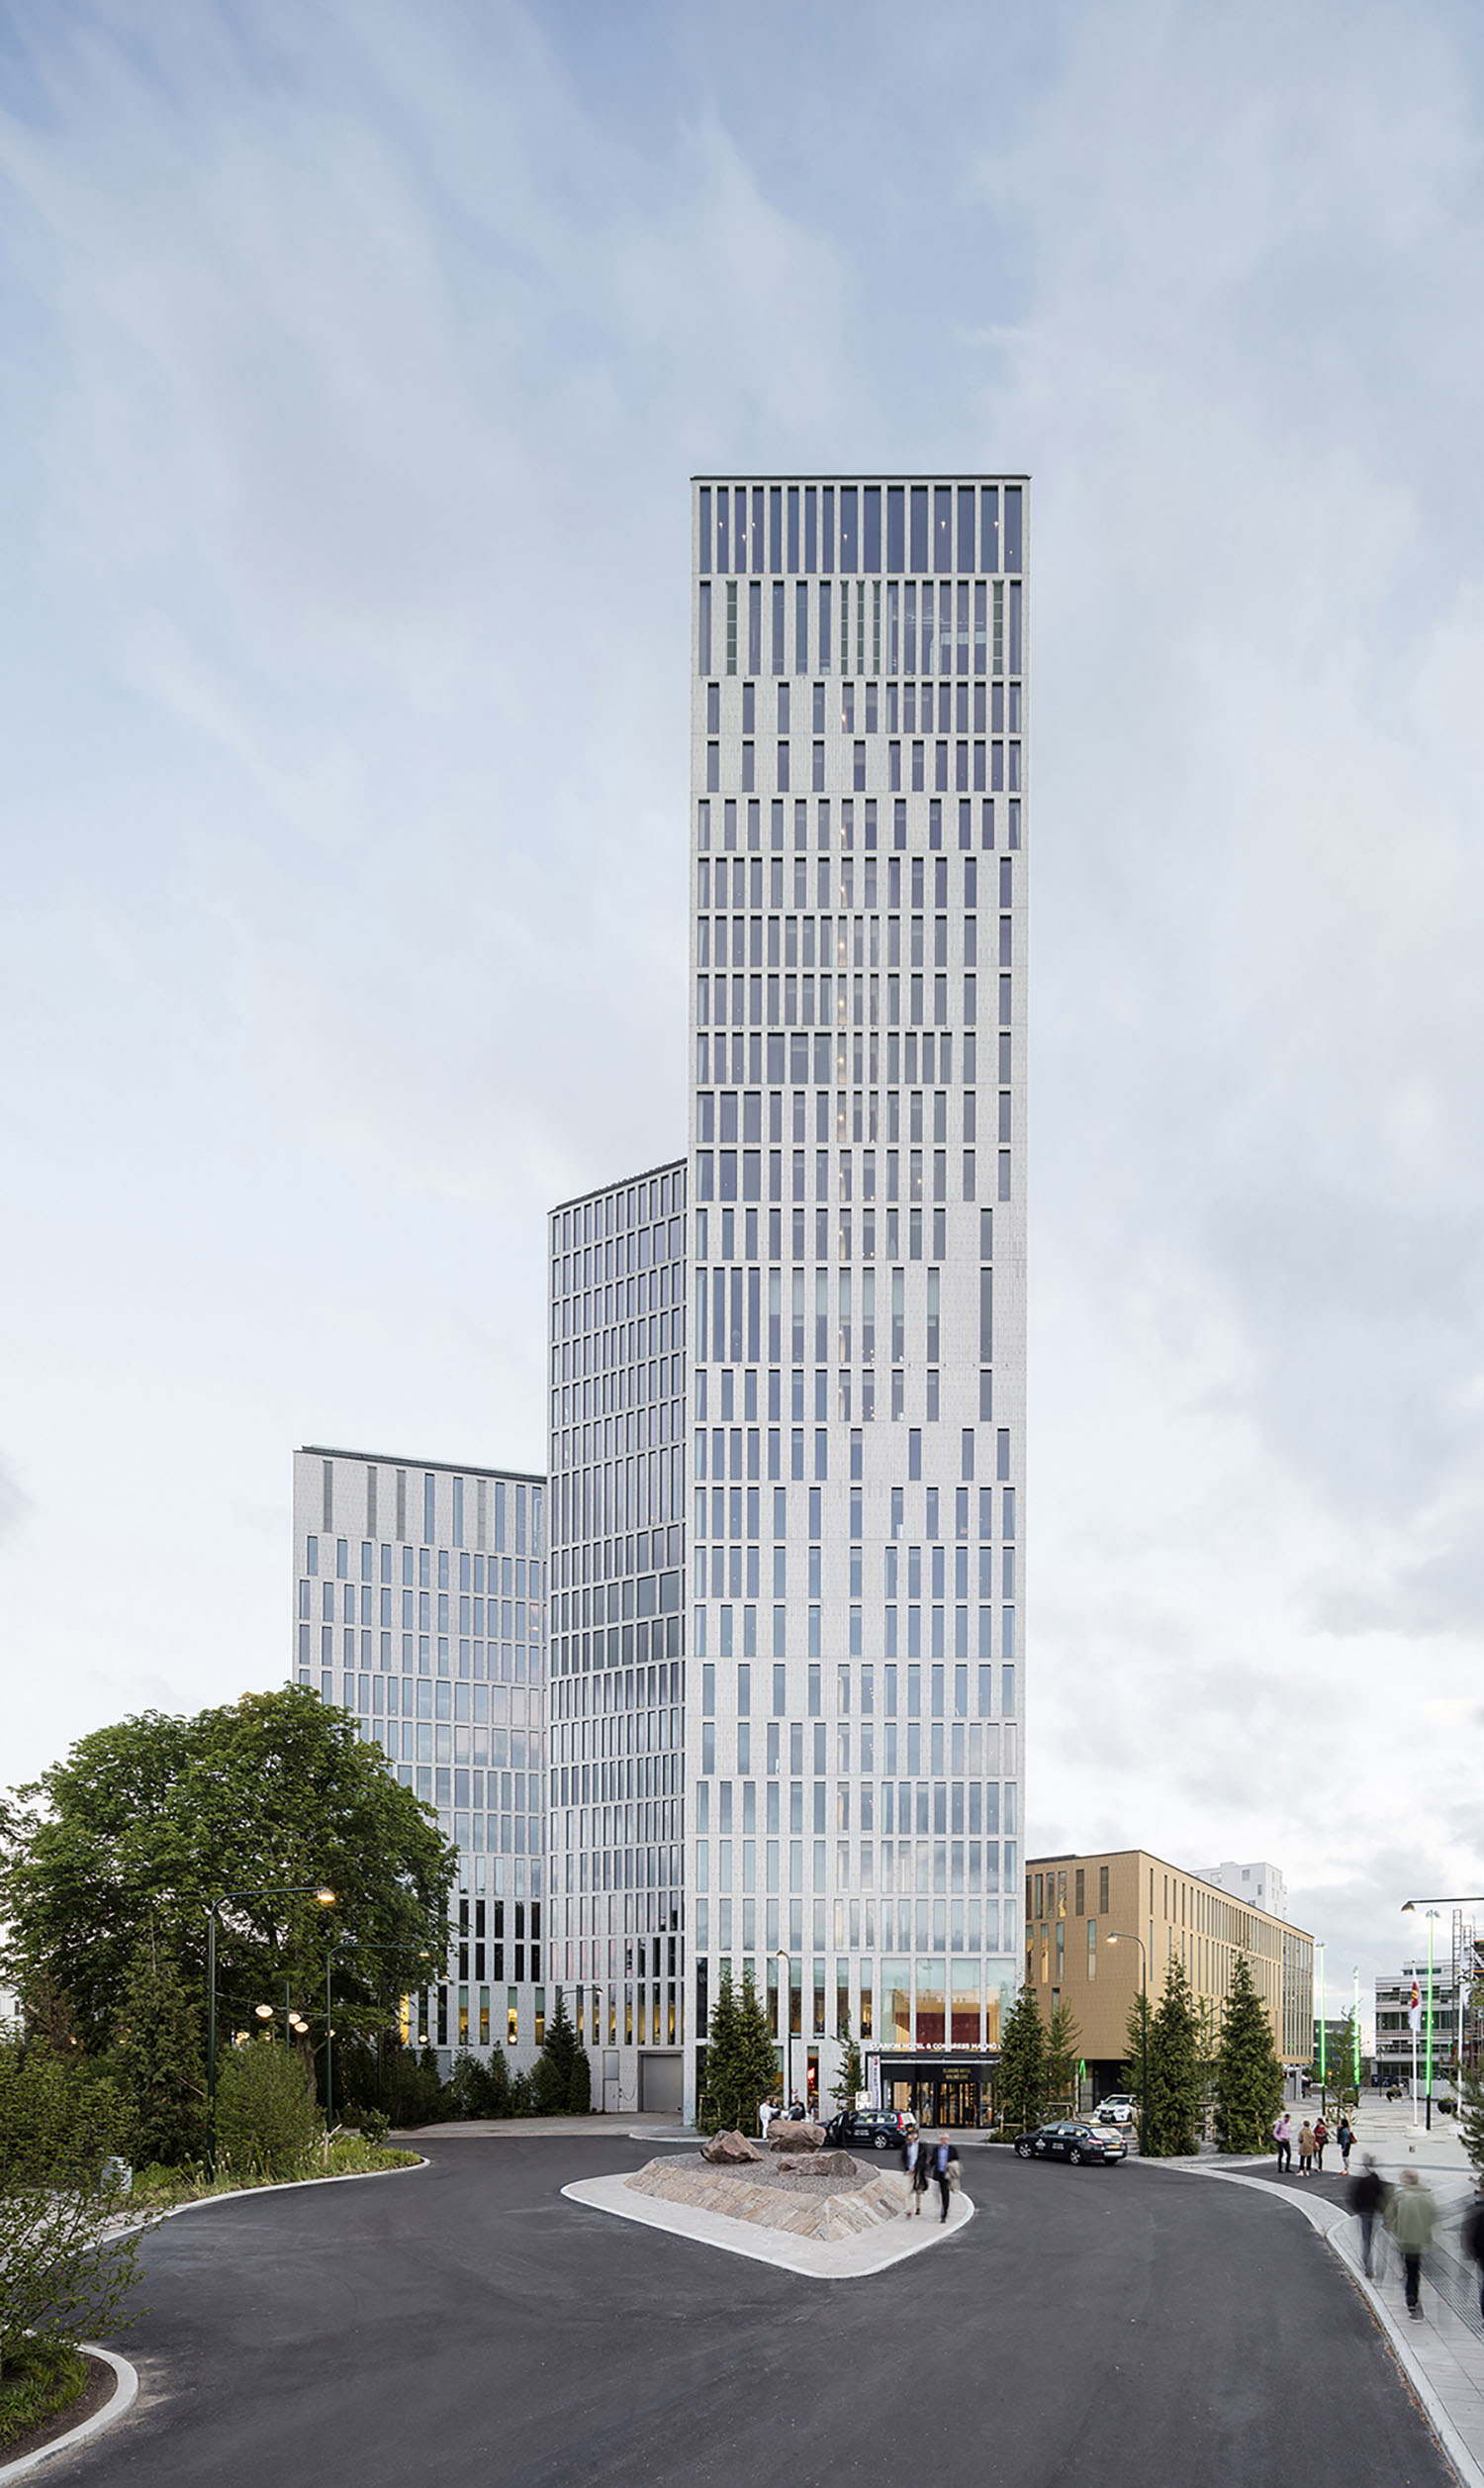 The Clarion Hotel at Malmö Live